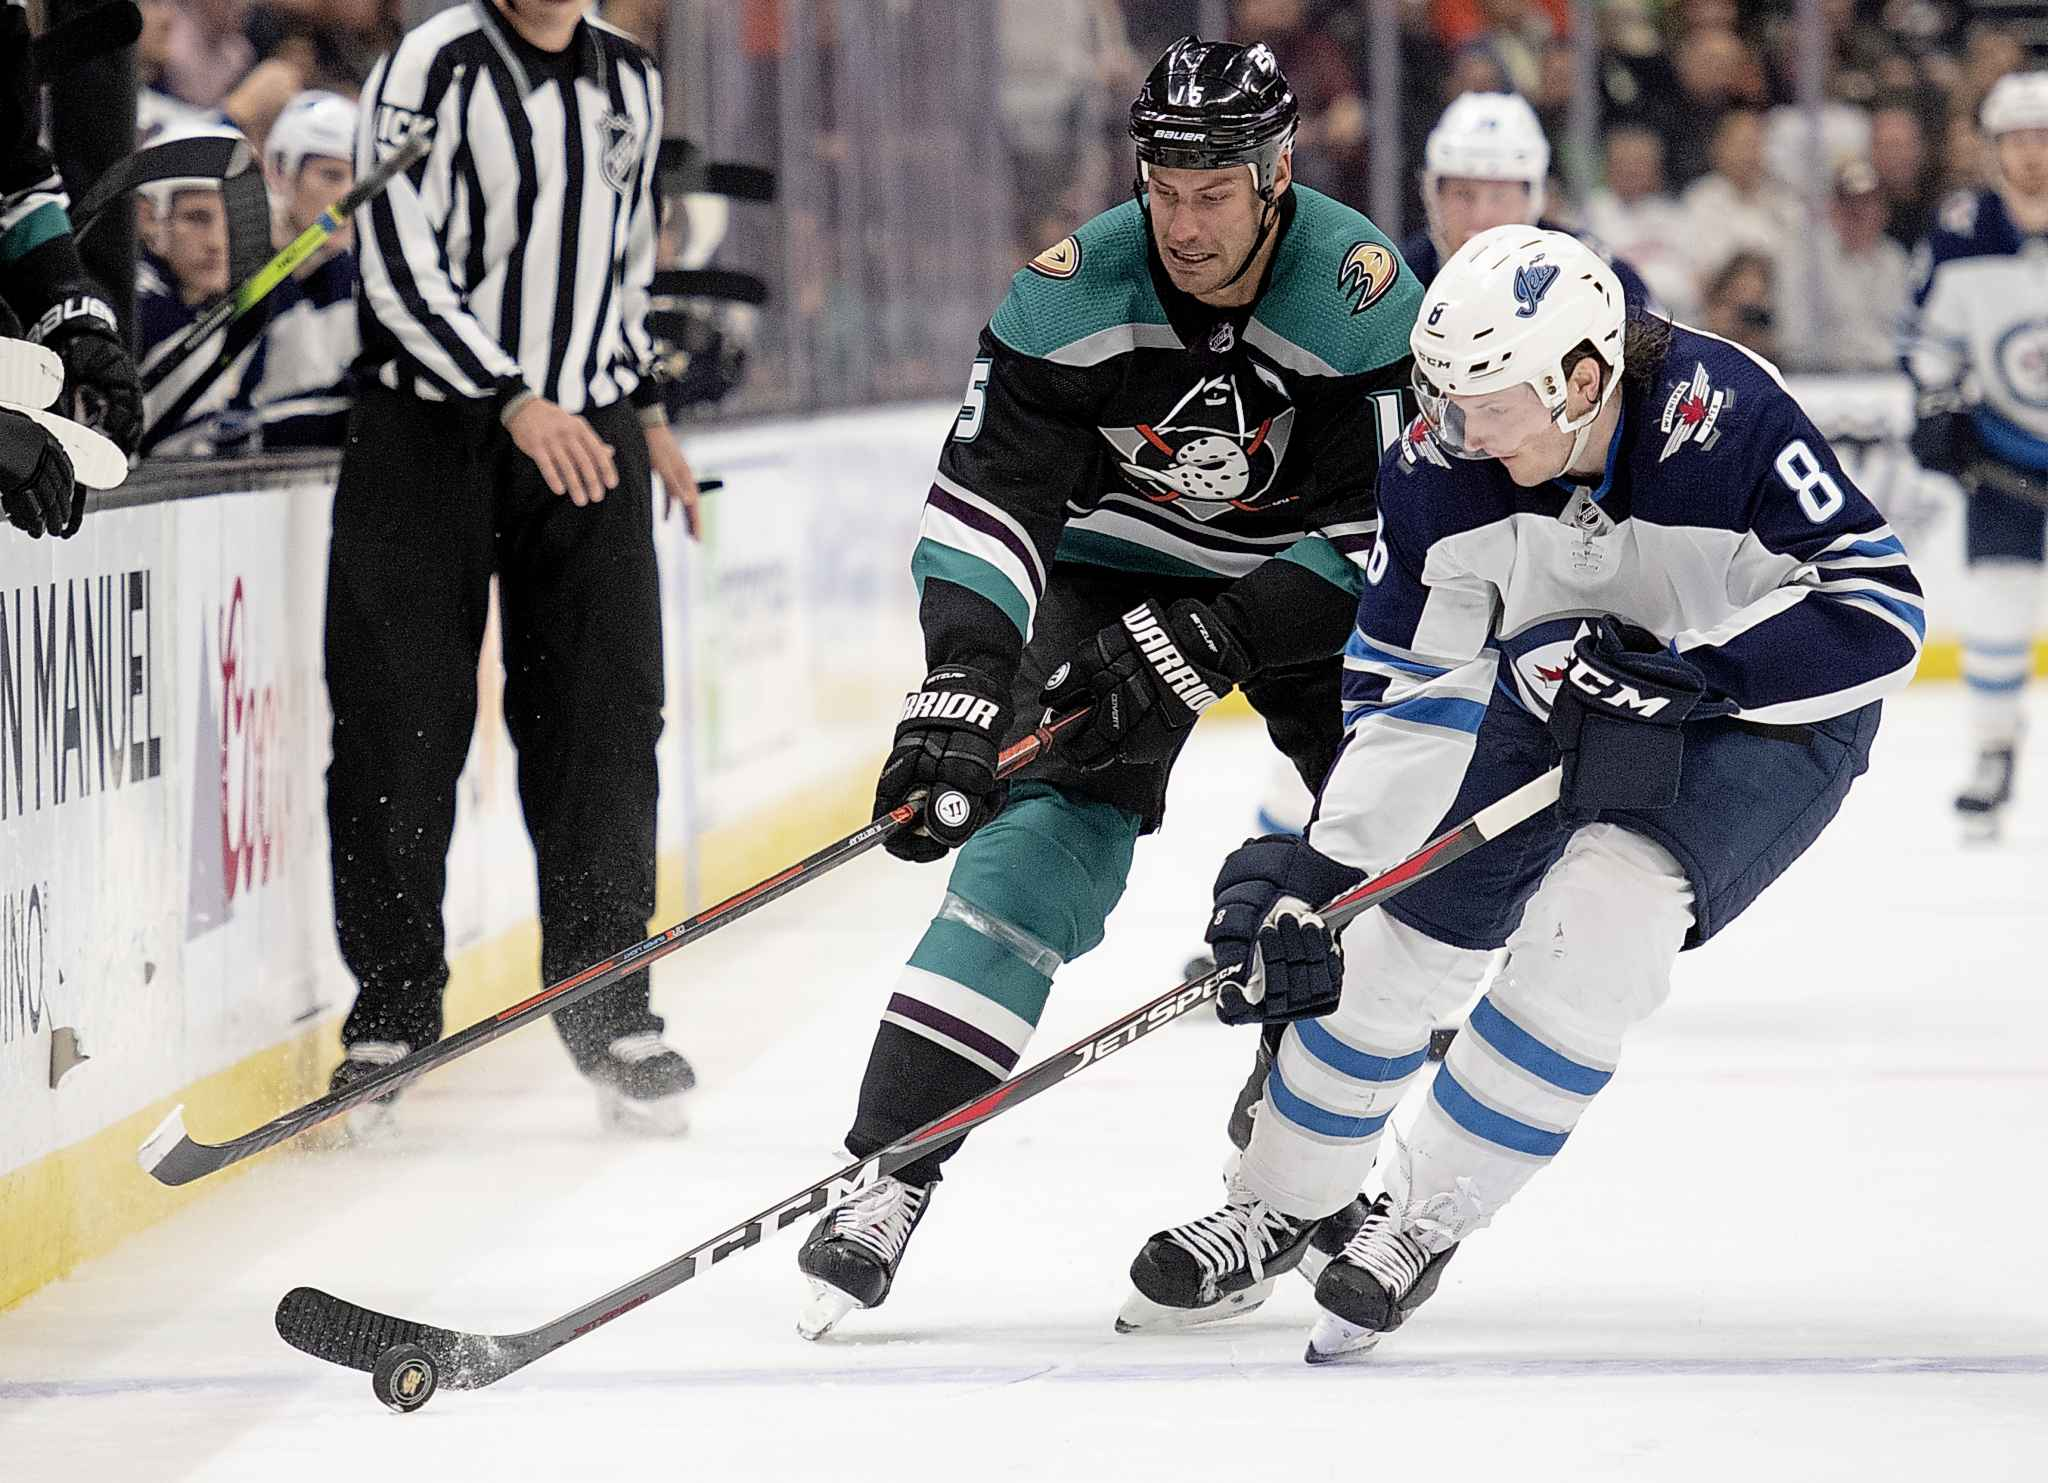 Anaheim Ducks center Ryan Getzlaf, back, chases Winnipeg Jets defenseman Jacob Trouba for the puck during the second period of an NHL hockey game in Anaheim, Calif., Wednesday, March 20, 2019. (AP Photo/Kyusung Gong)